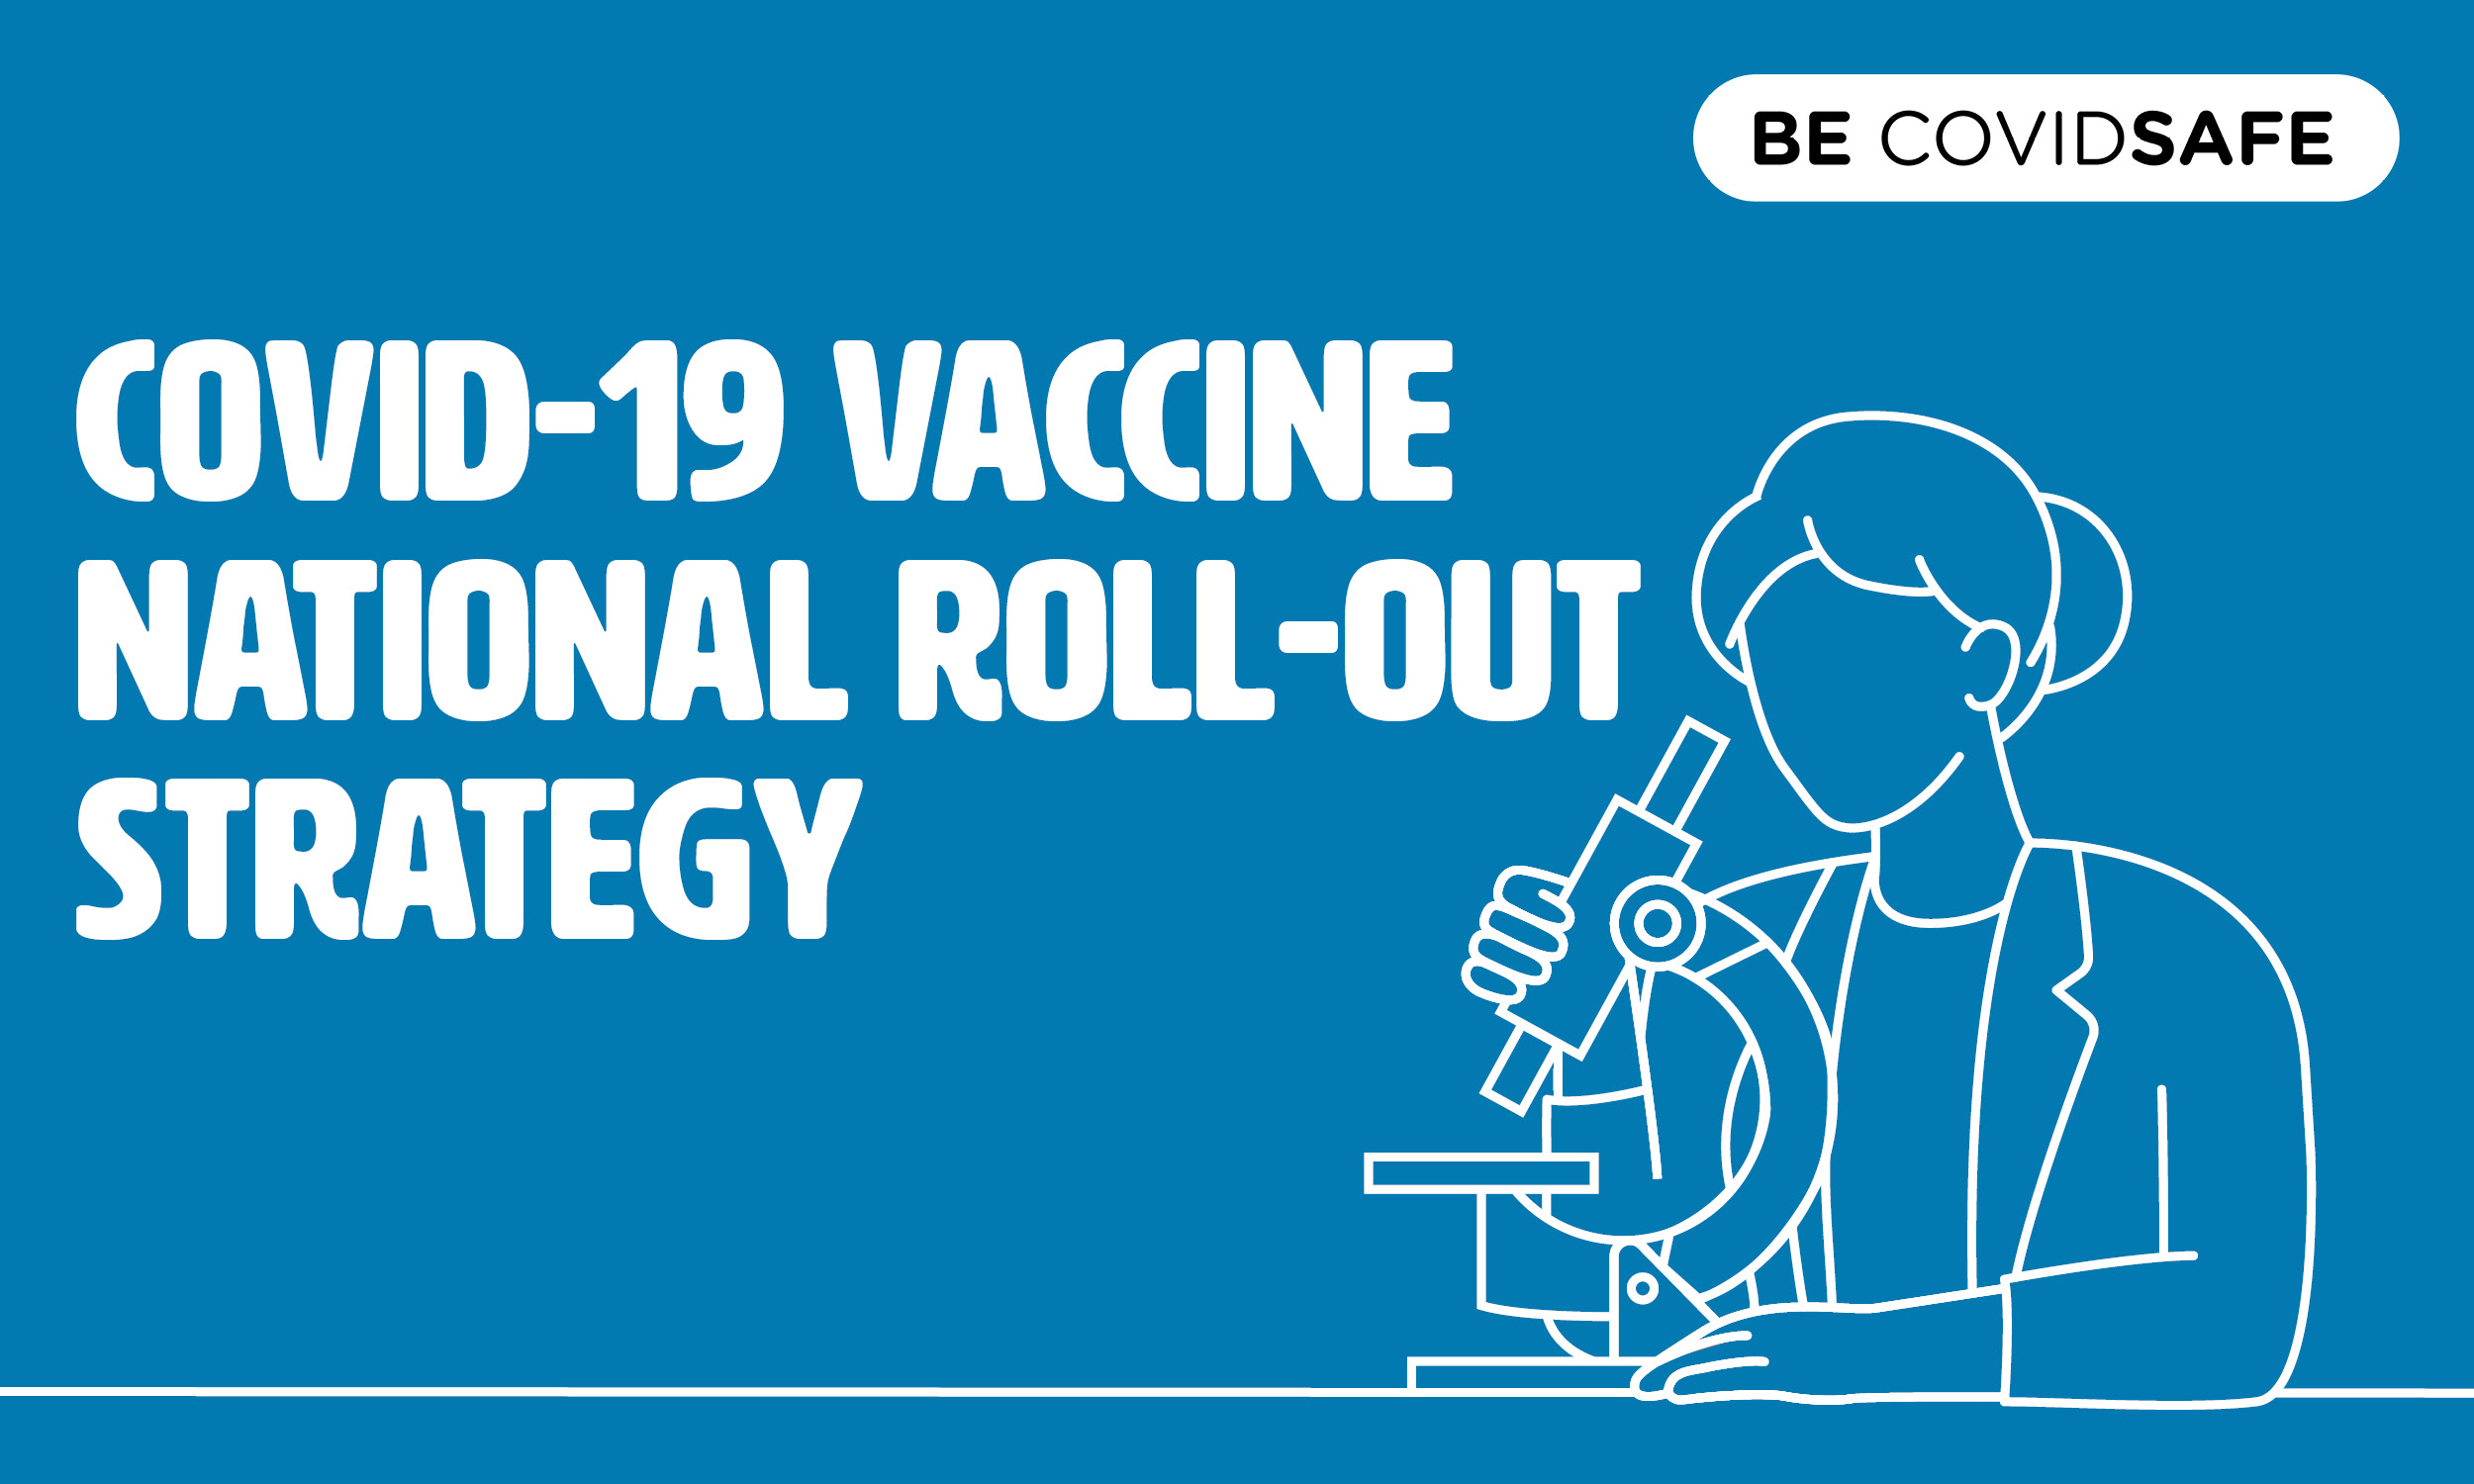 COVID-19 vaccine national rollout strategy plan